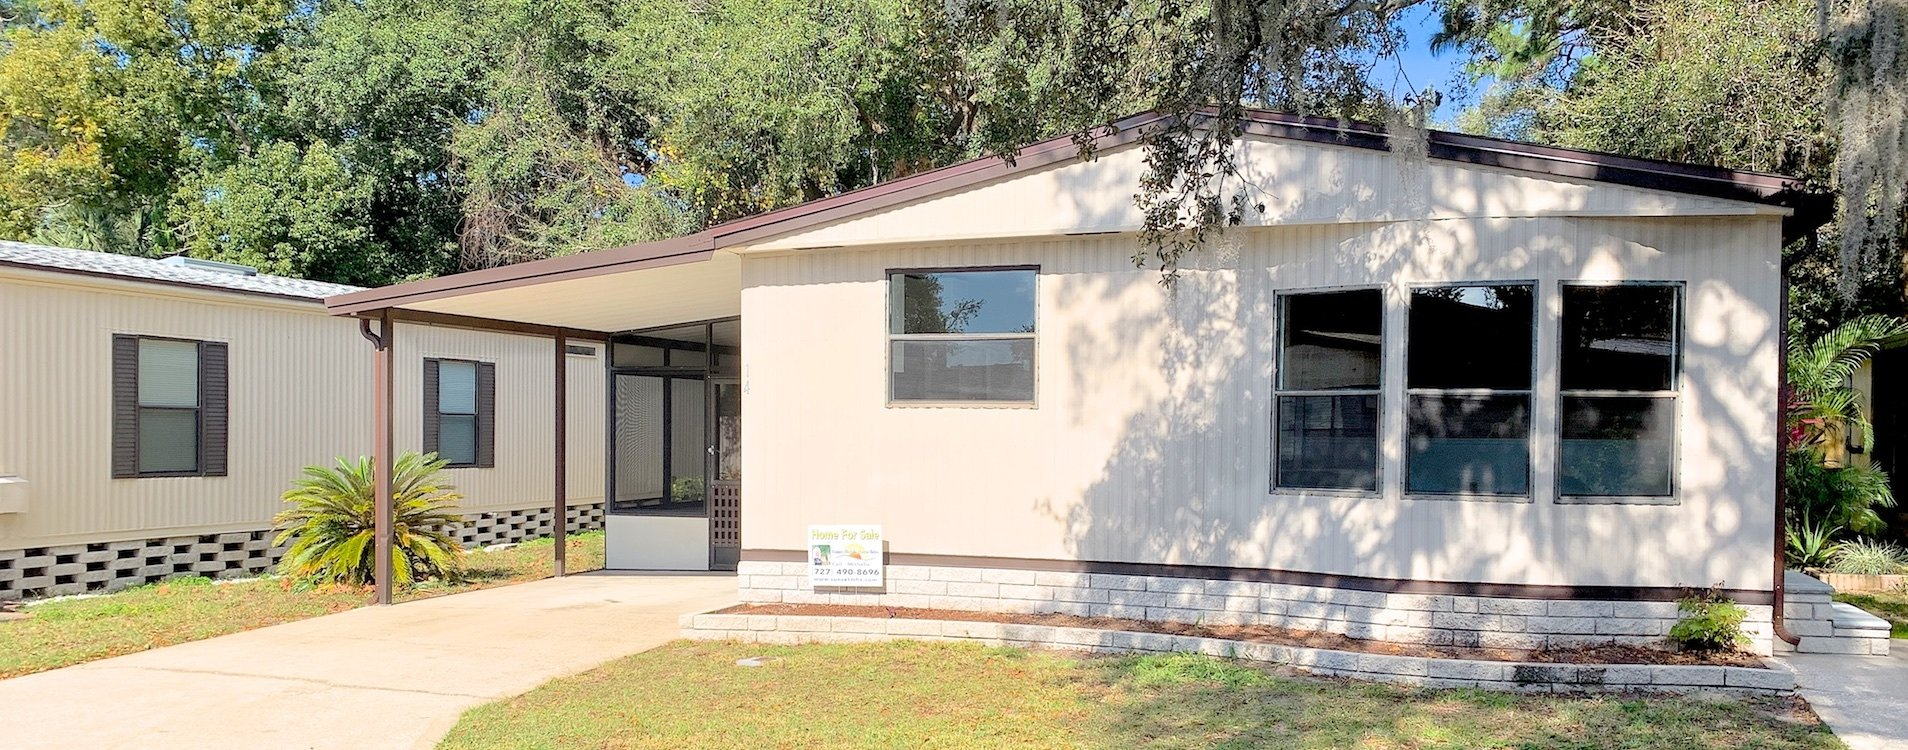 Mobile Home For Sale Holiday Fl Anclote Acres 14